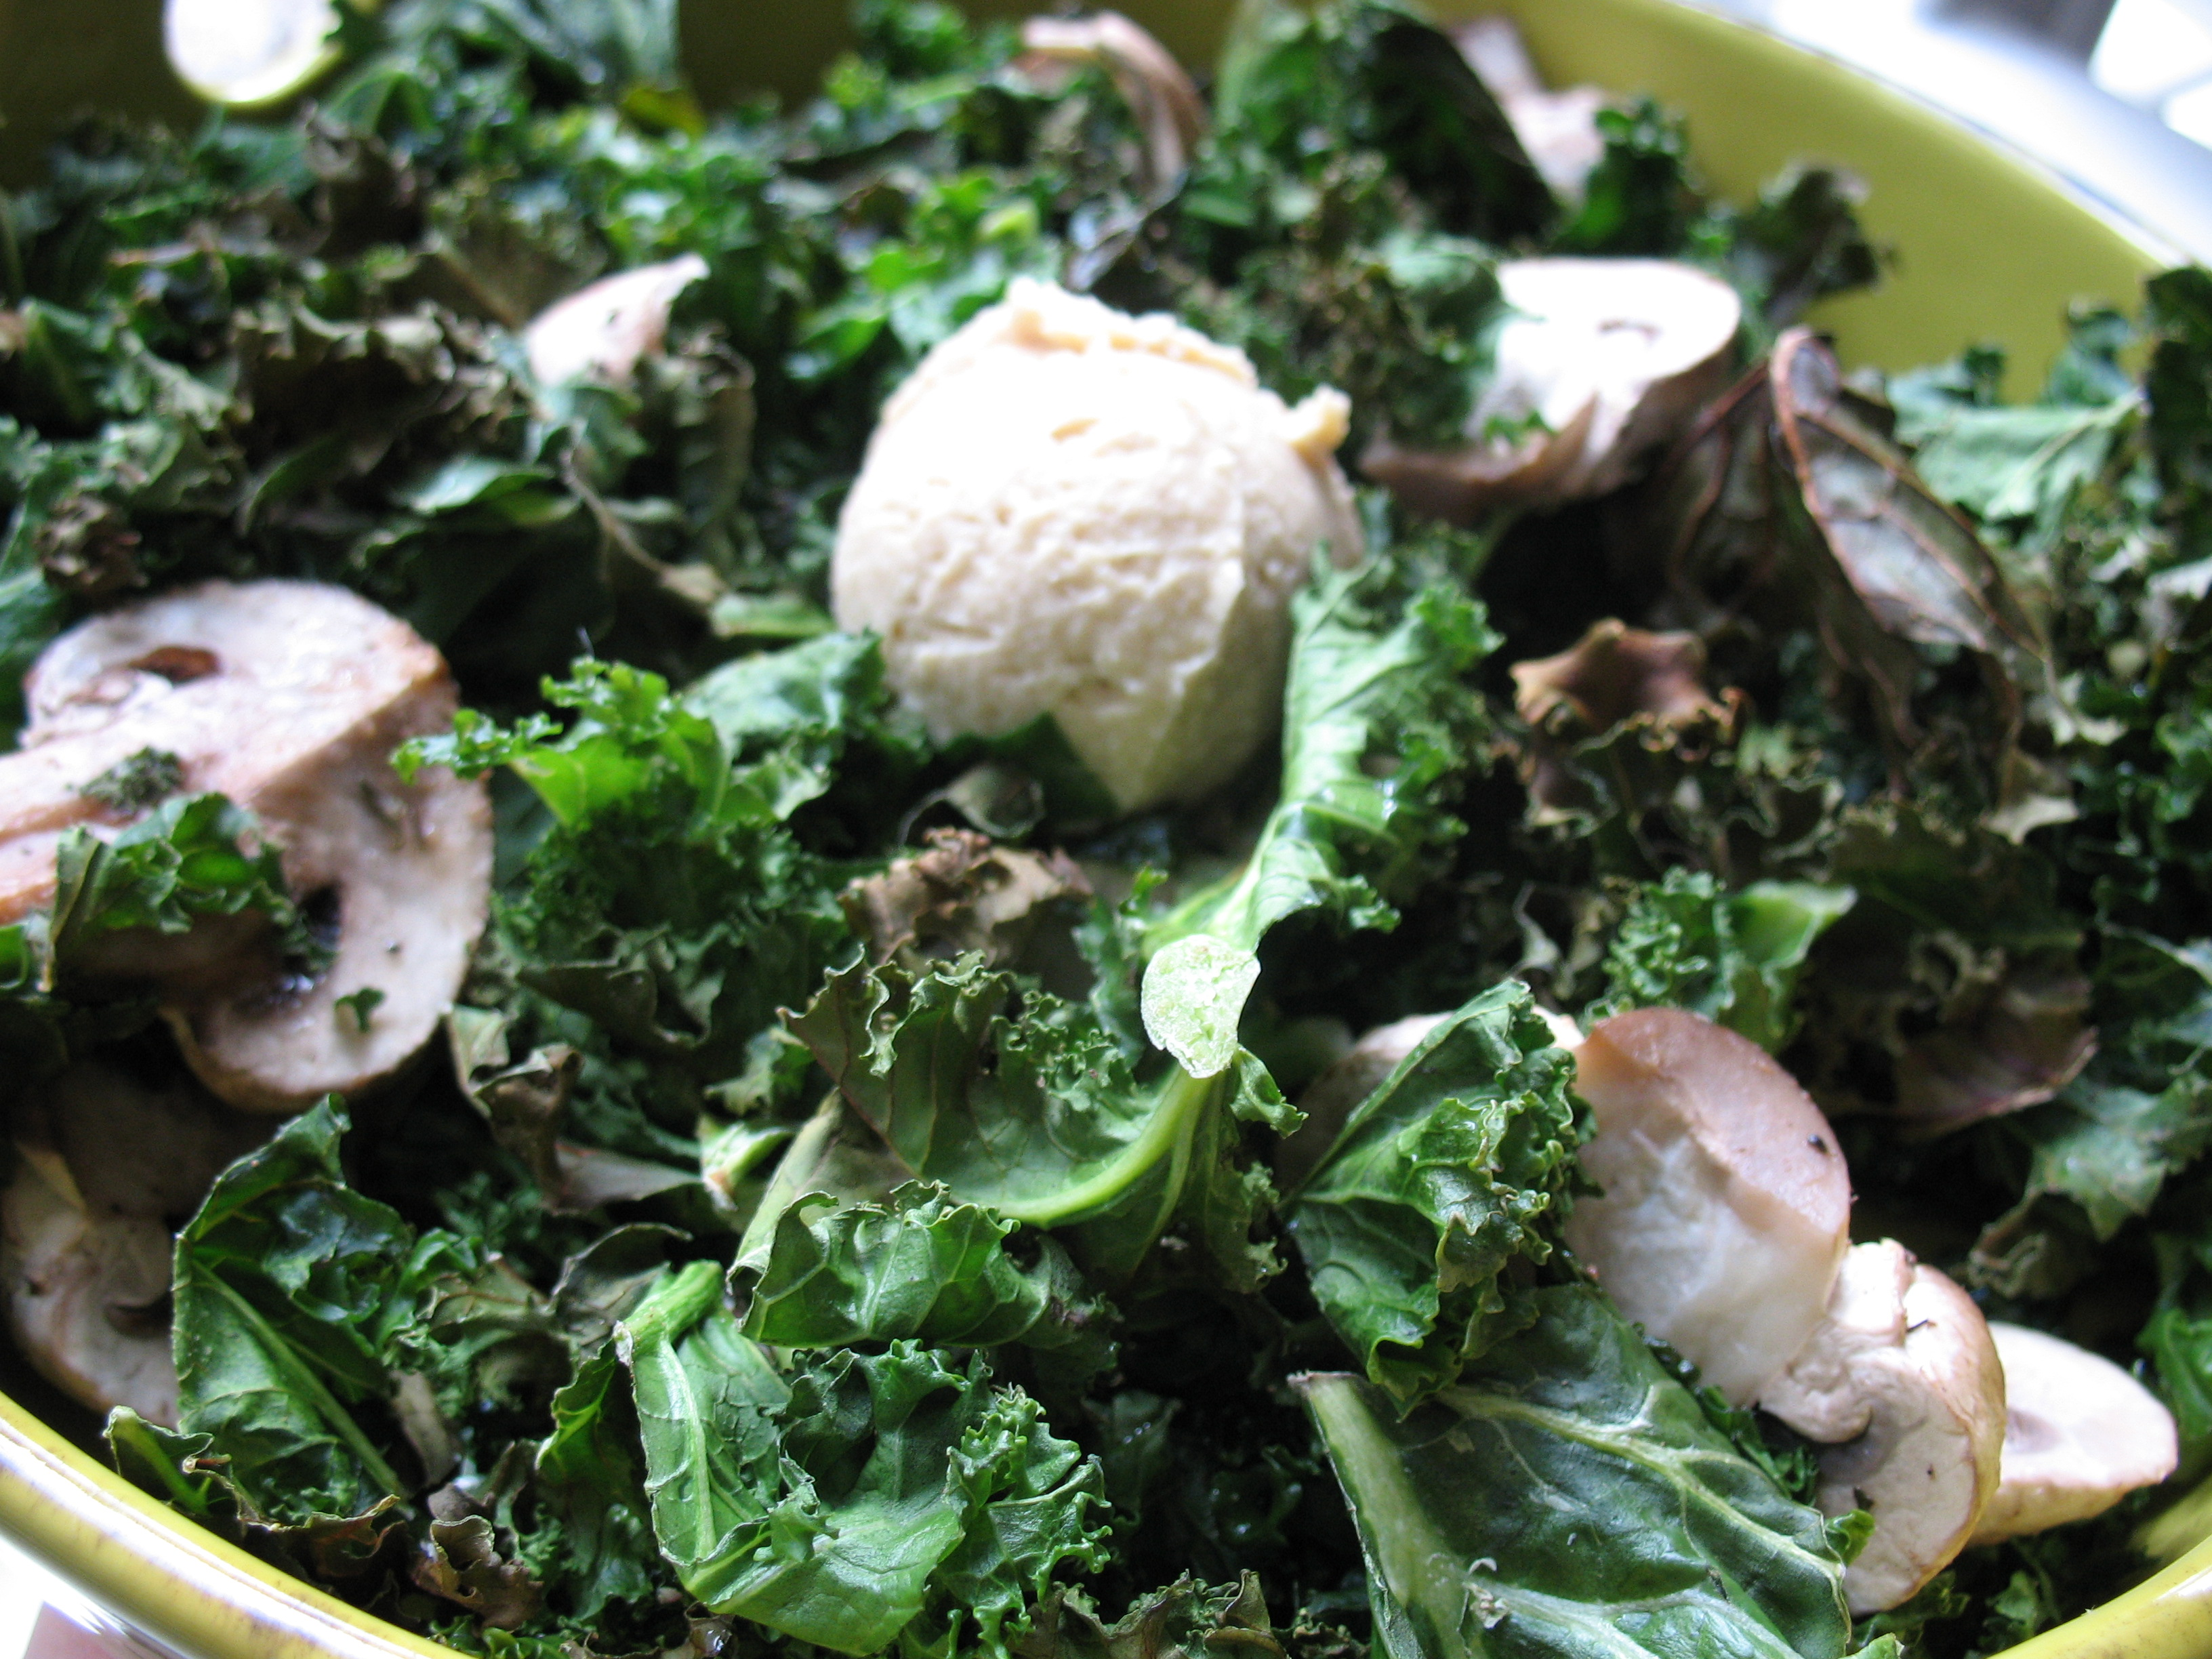 1st course - roasted kale & mushrooms with hummus.